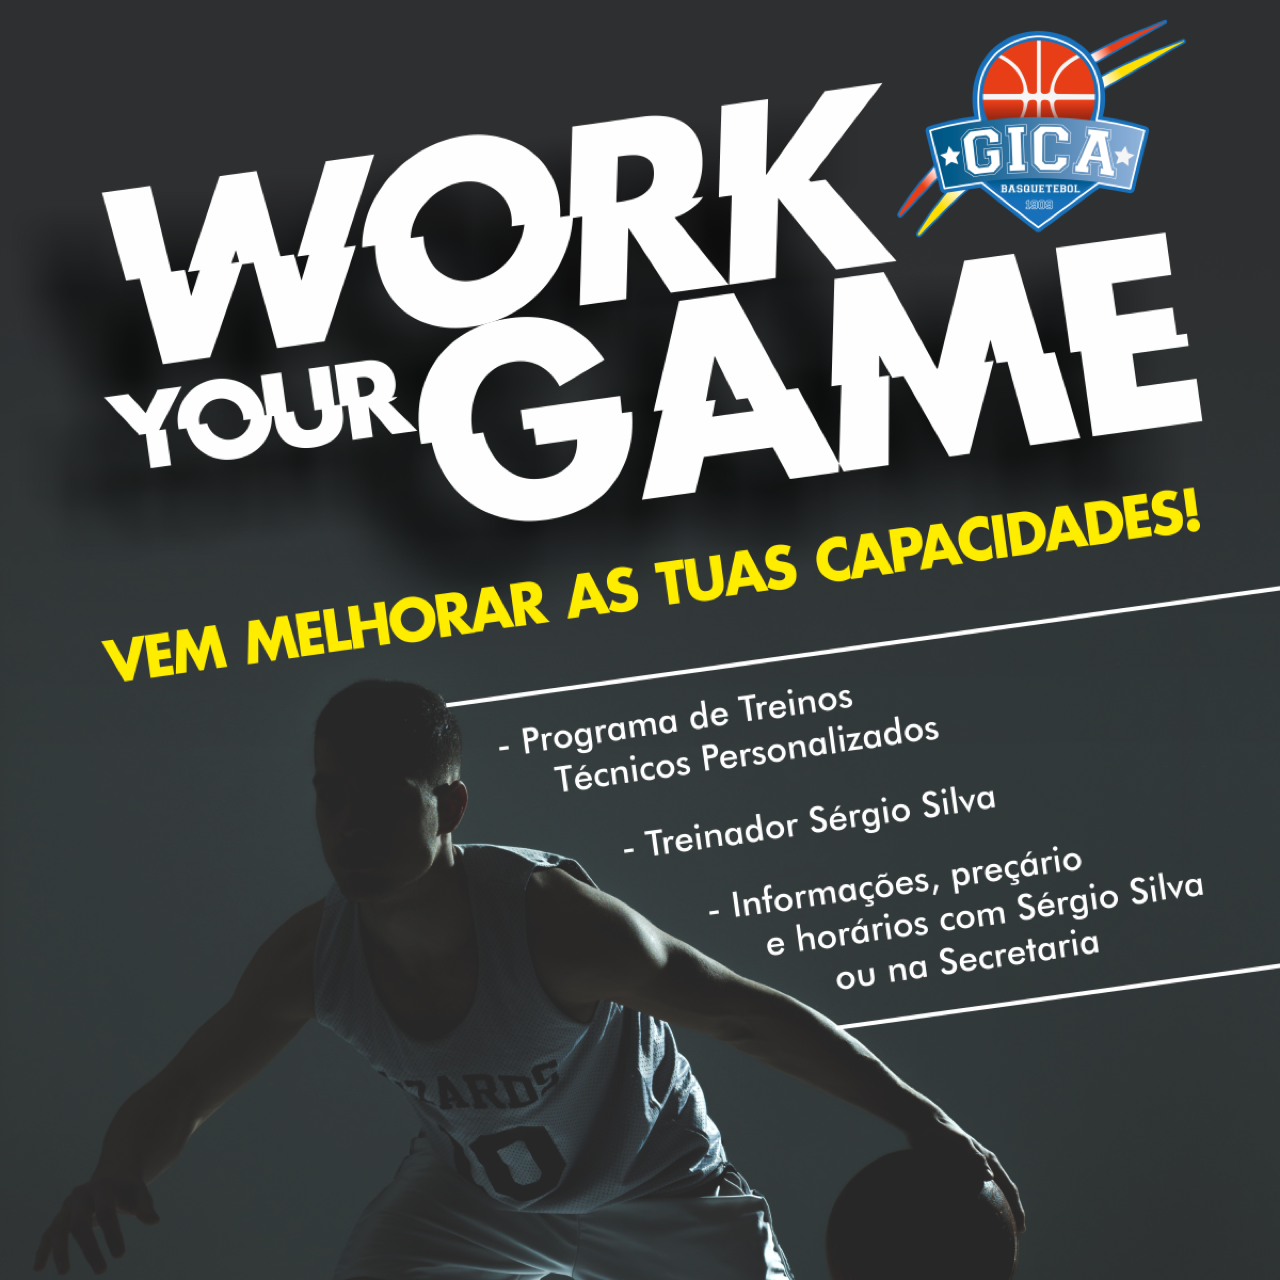 Work your game_Facebook post